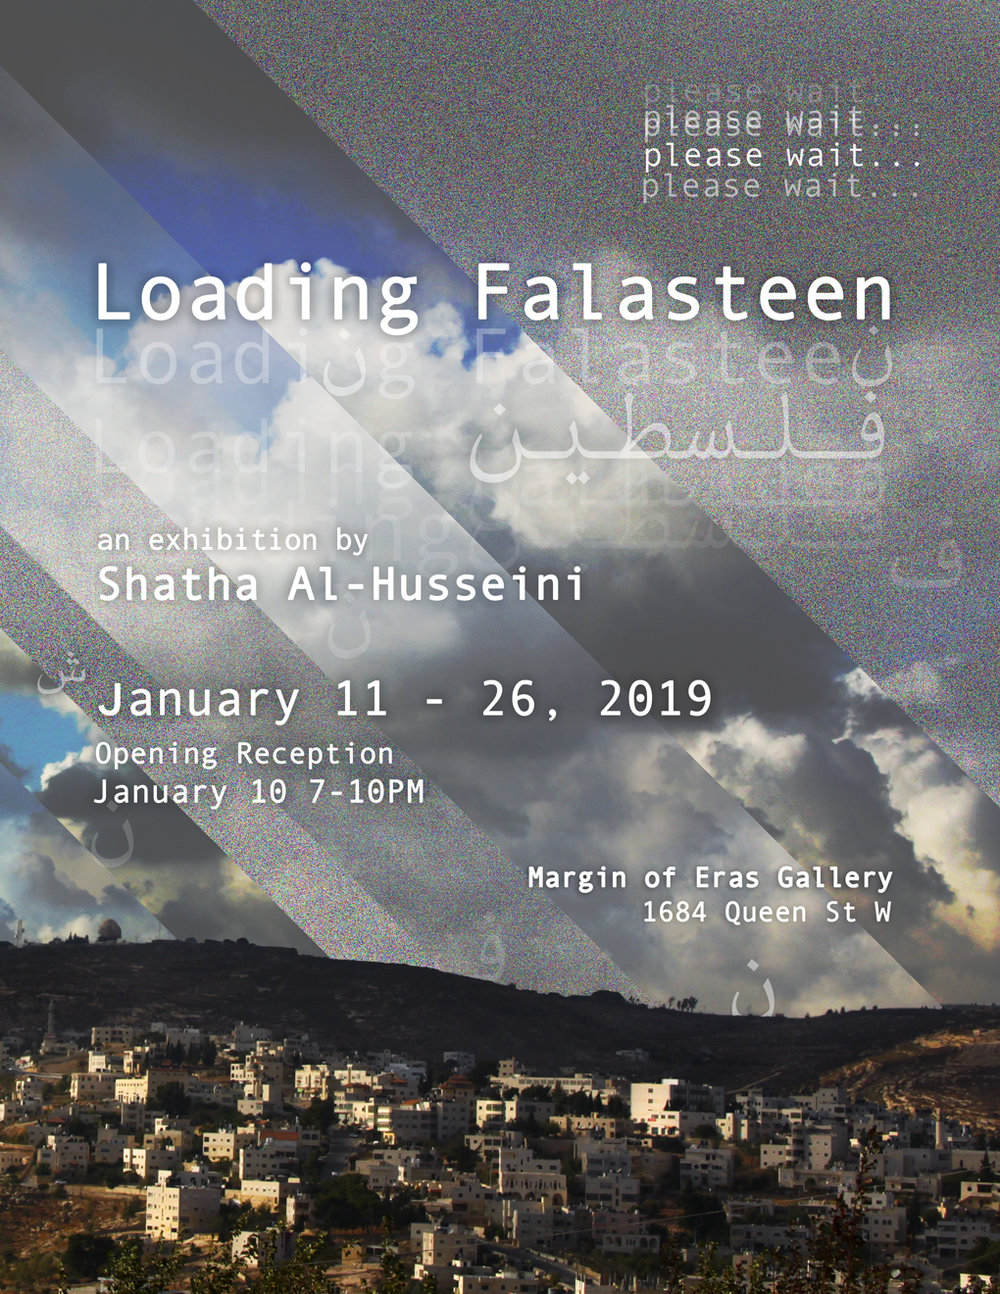 loadingFalasteen_dec16.jpg